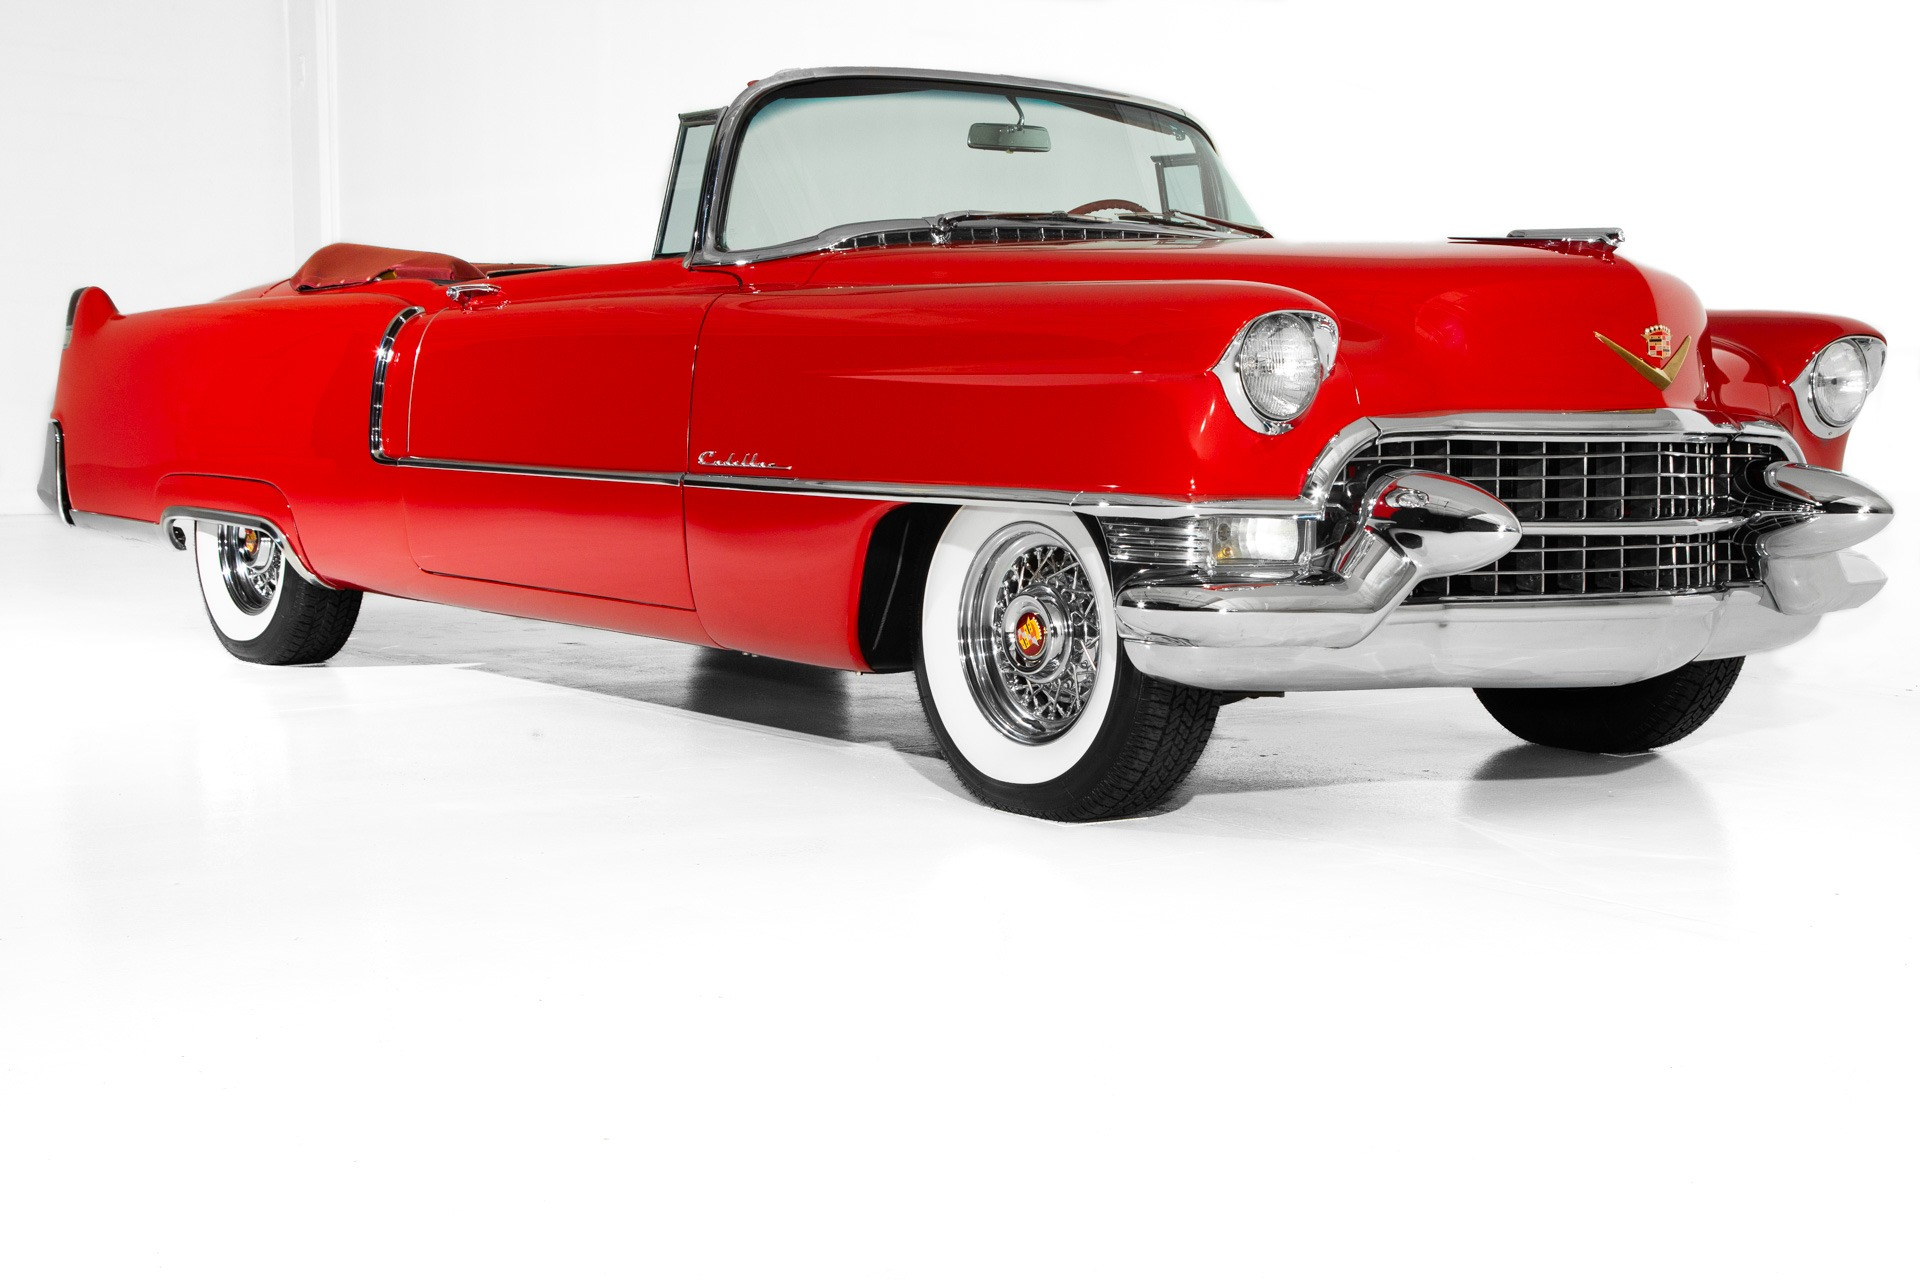 1955 Cadillac Series 62 Extensive Restoration